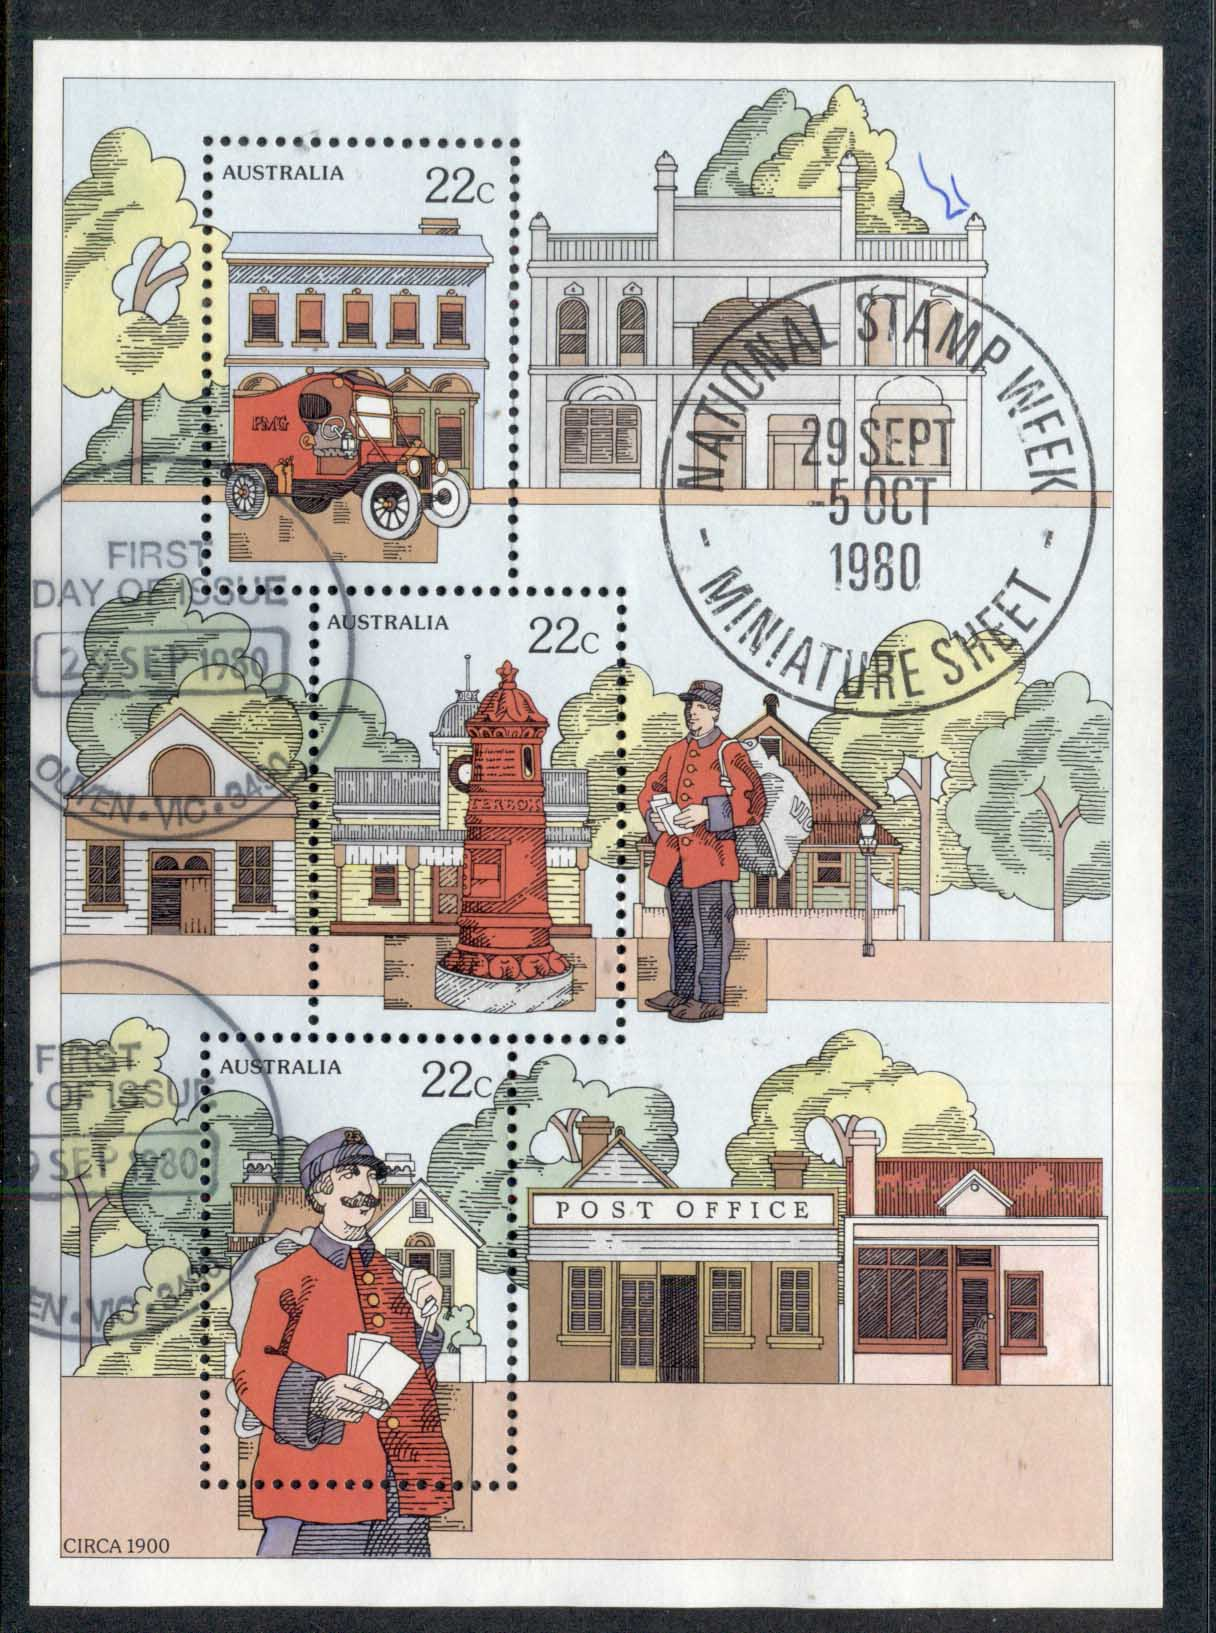 Australia 1980 Stamp Week MS Ouyen FDI